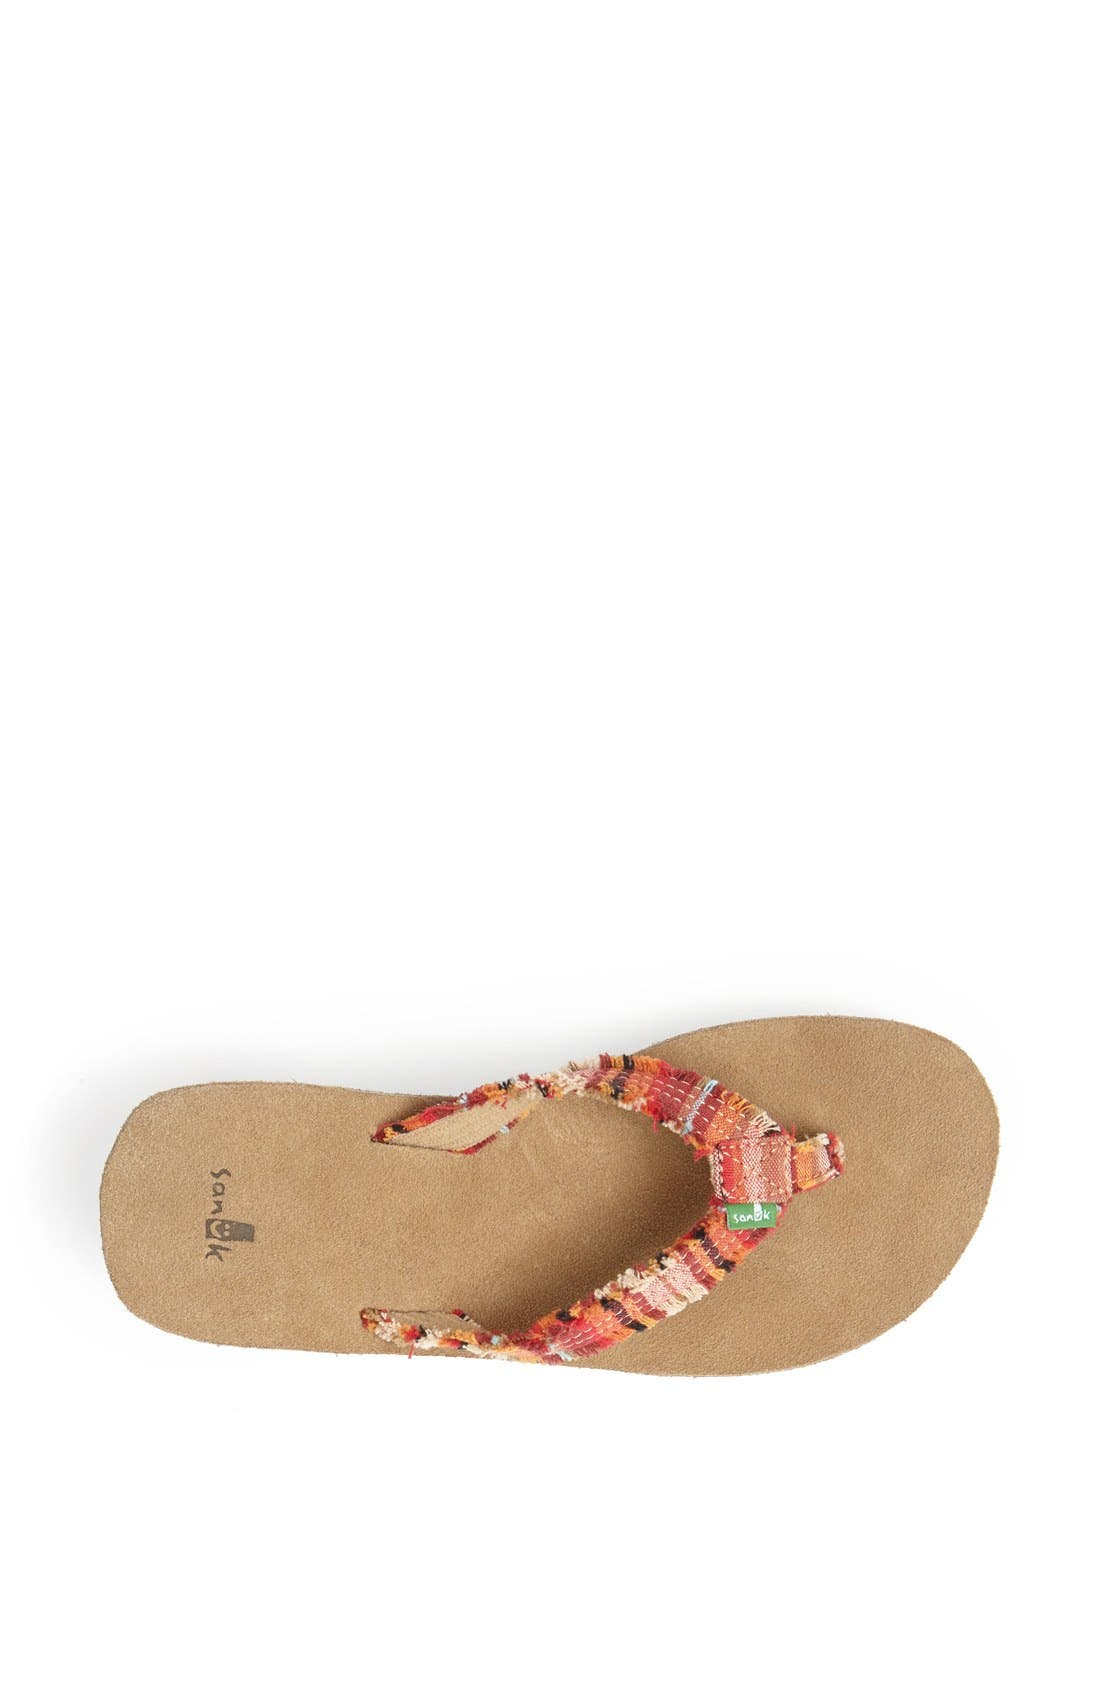 Alternate Image 3  - Sanuk 'Fraidy Cat' Wedge Flip Flop